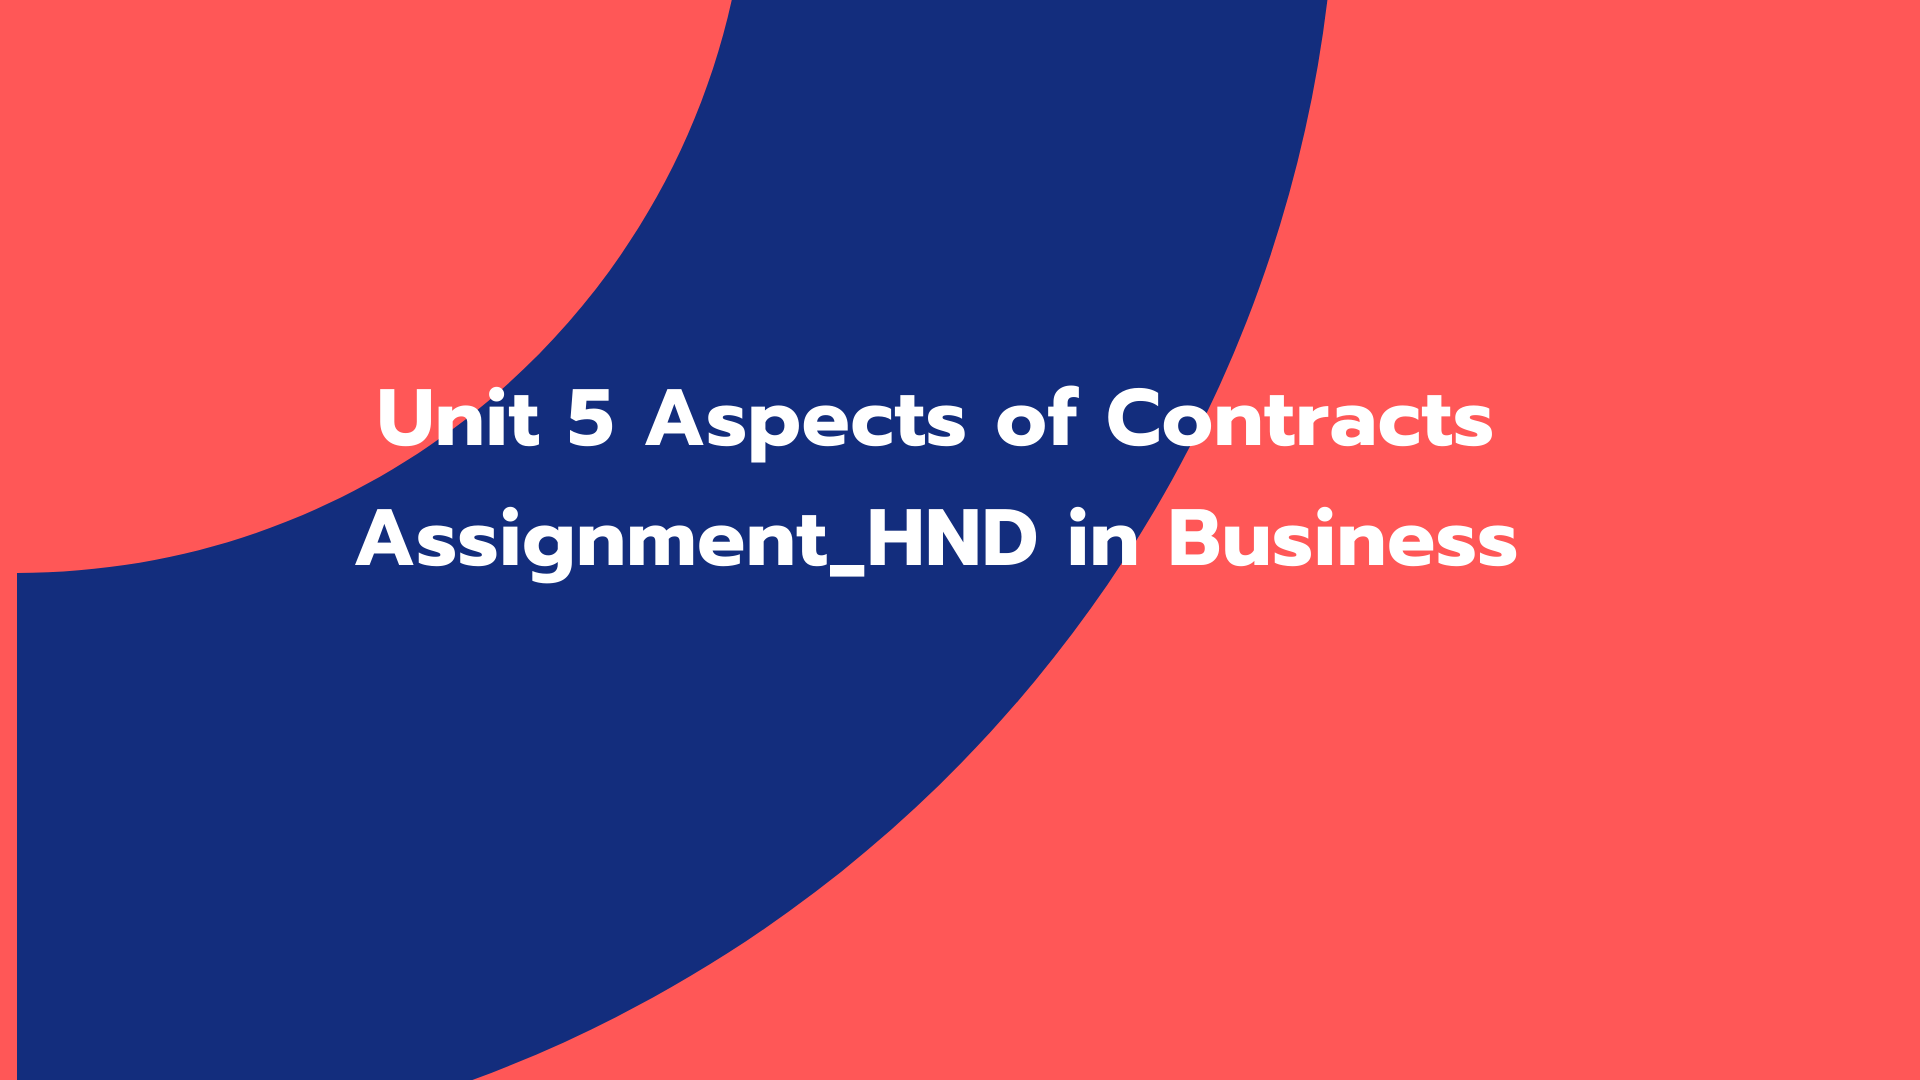 Unit 5 Aspects of Contracts Assignment_HND in Business